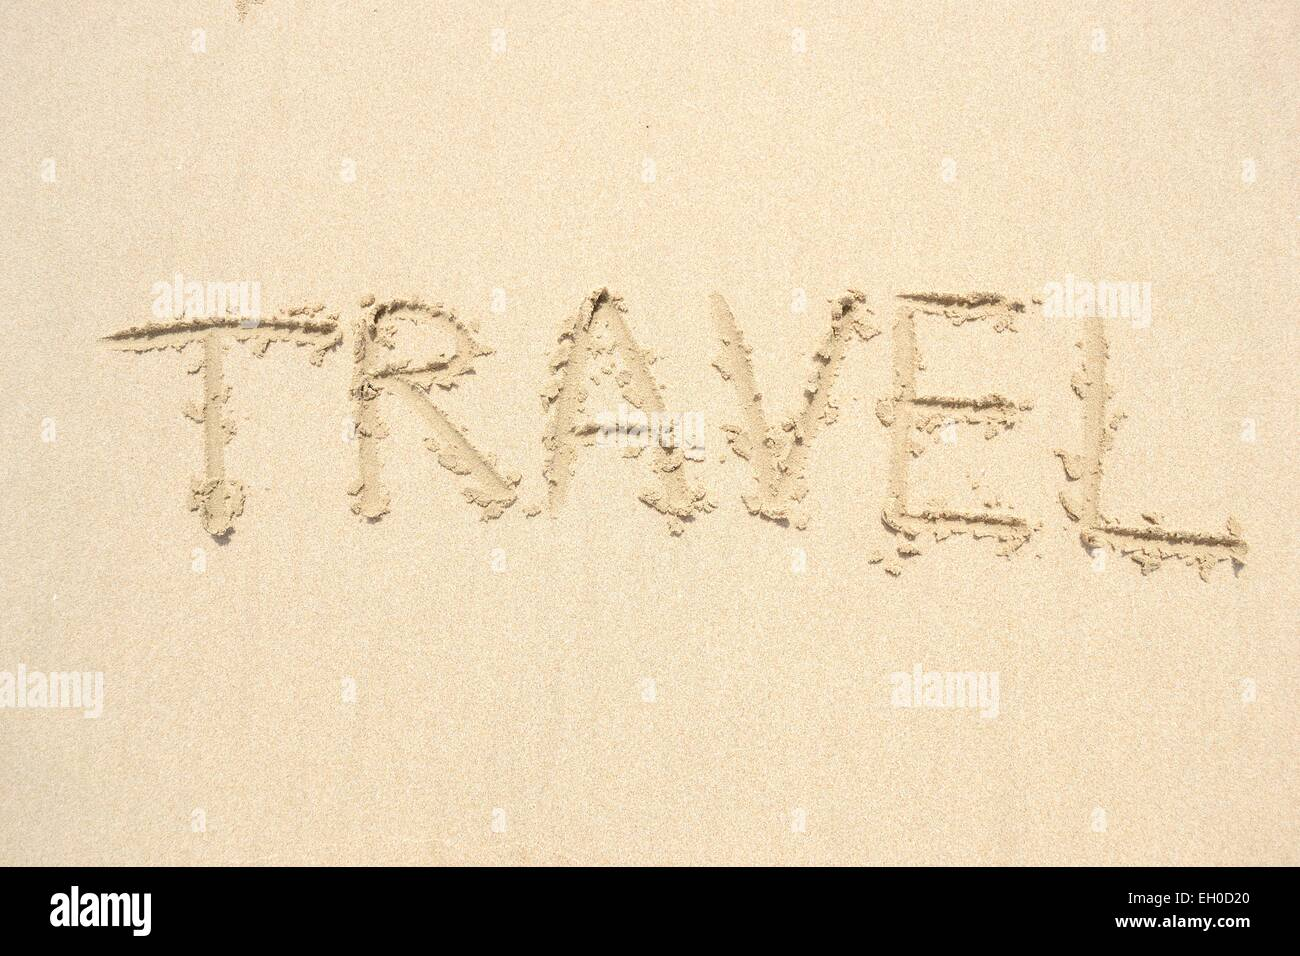 La main d'un mot sur la plage voyage Photo Stock